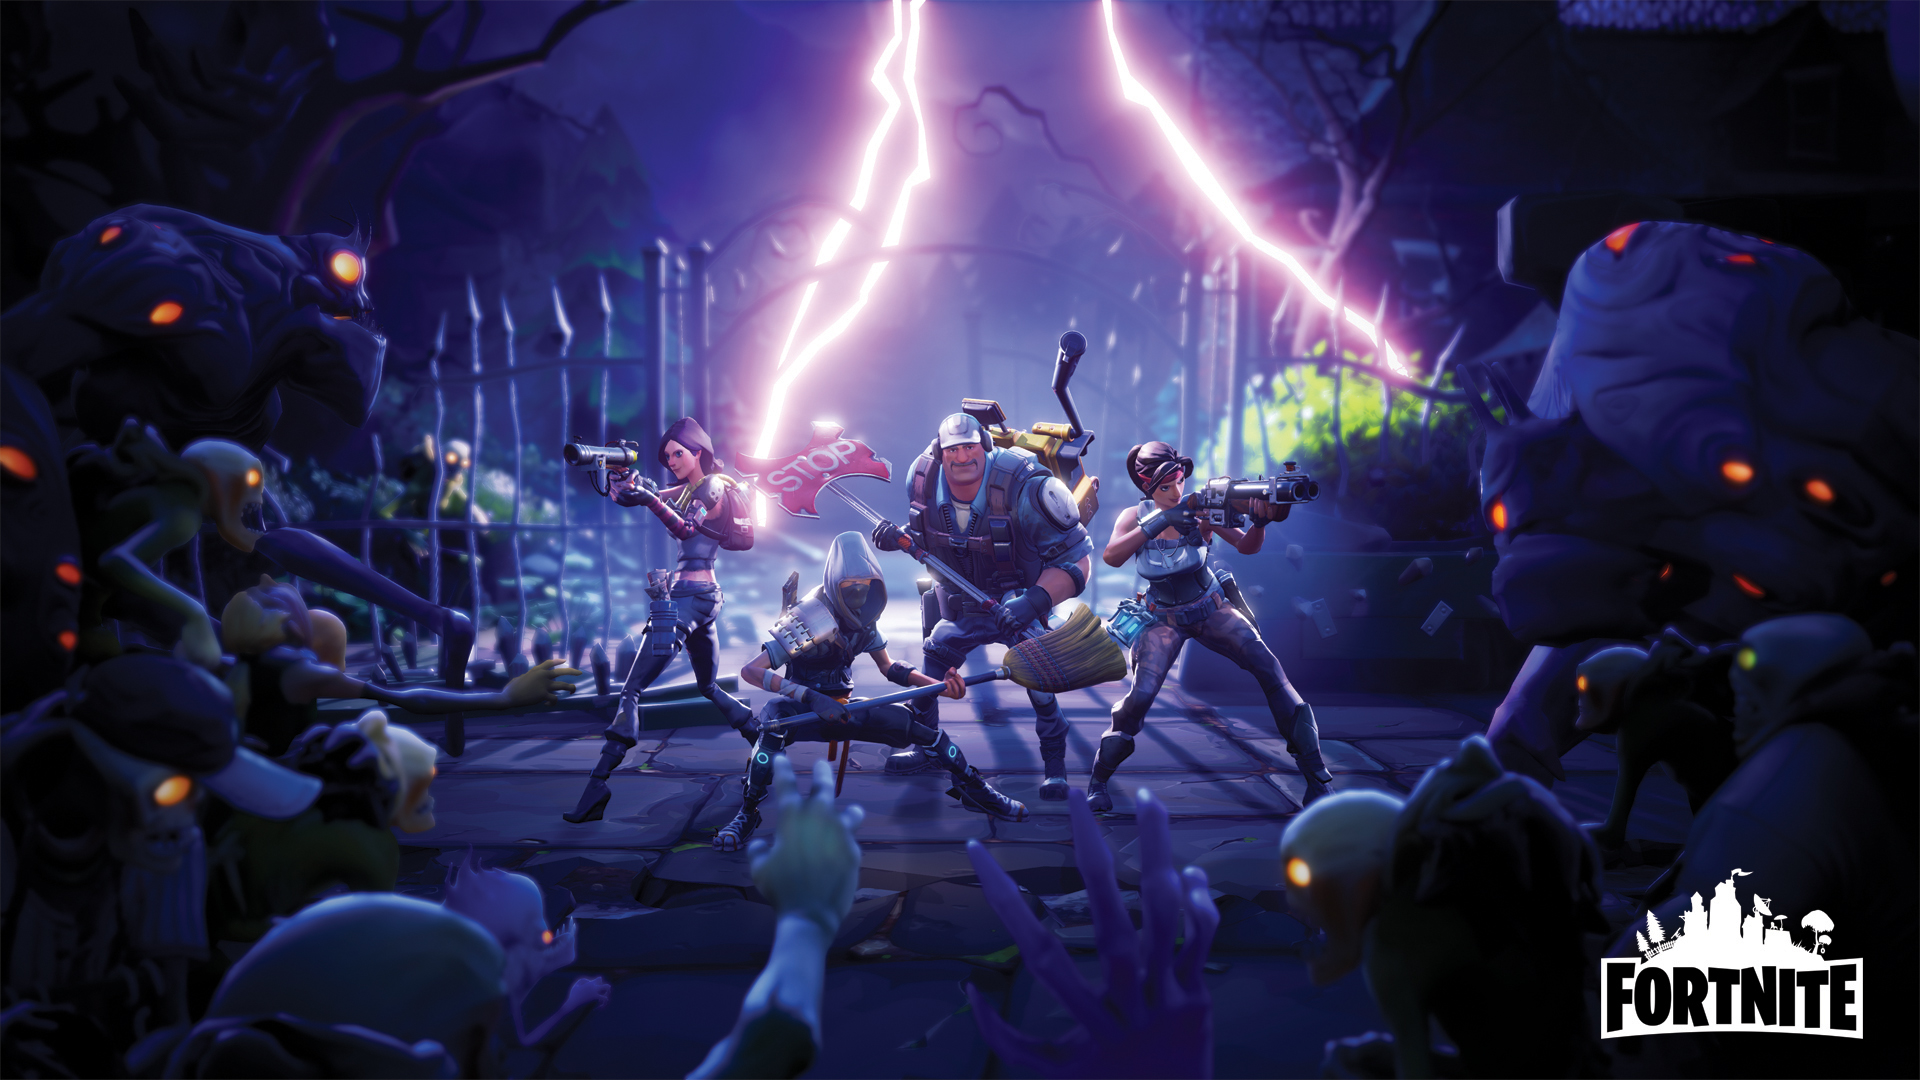 Fortnite Battle Royale in arrivo su dispositivi mobili